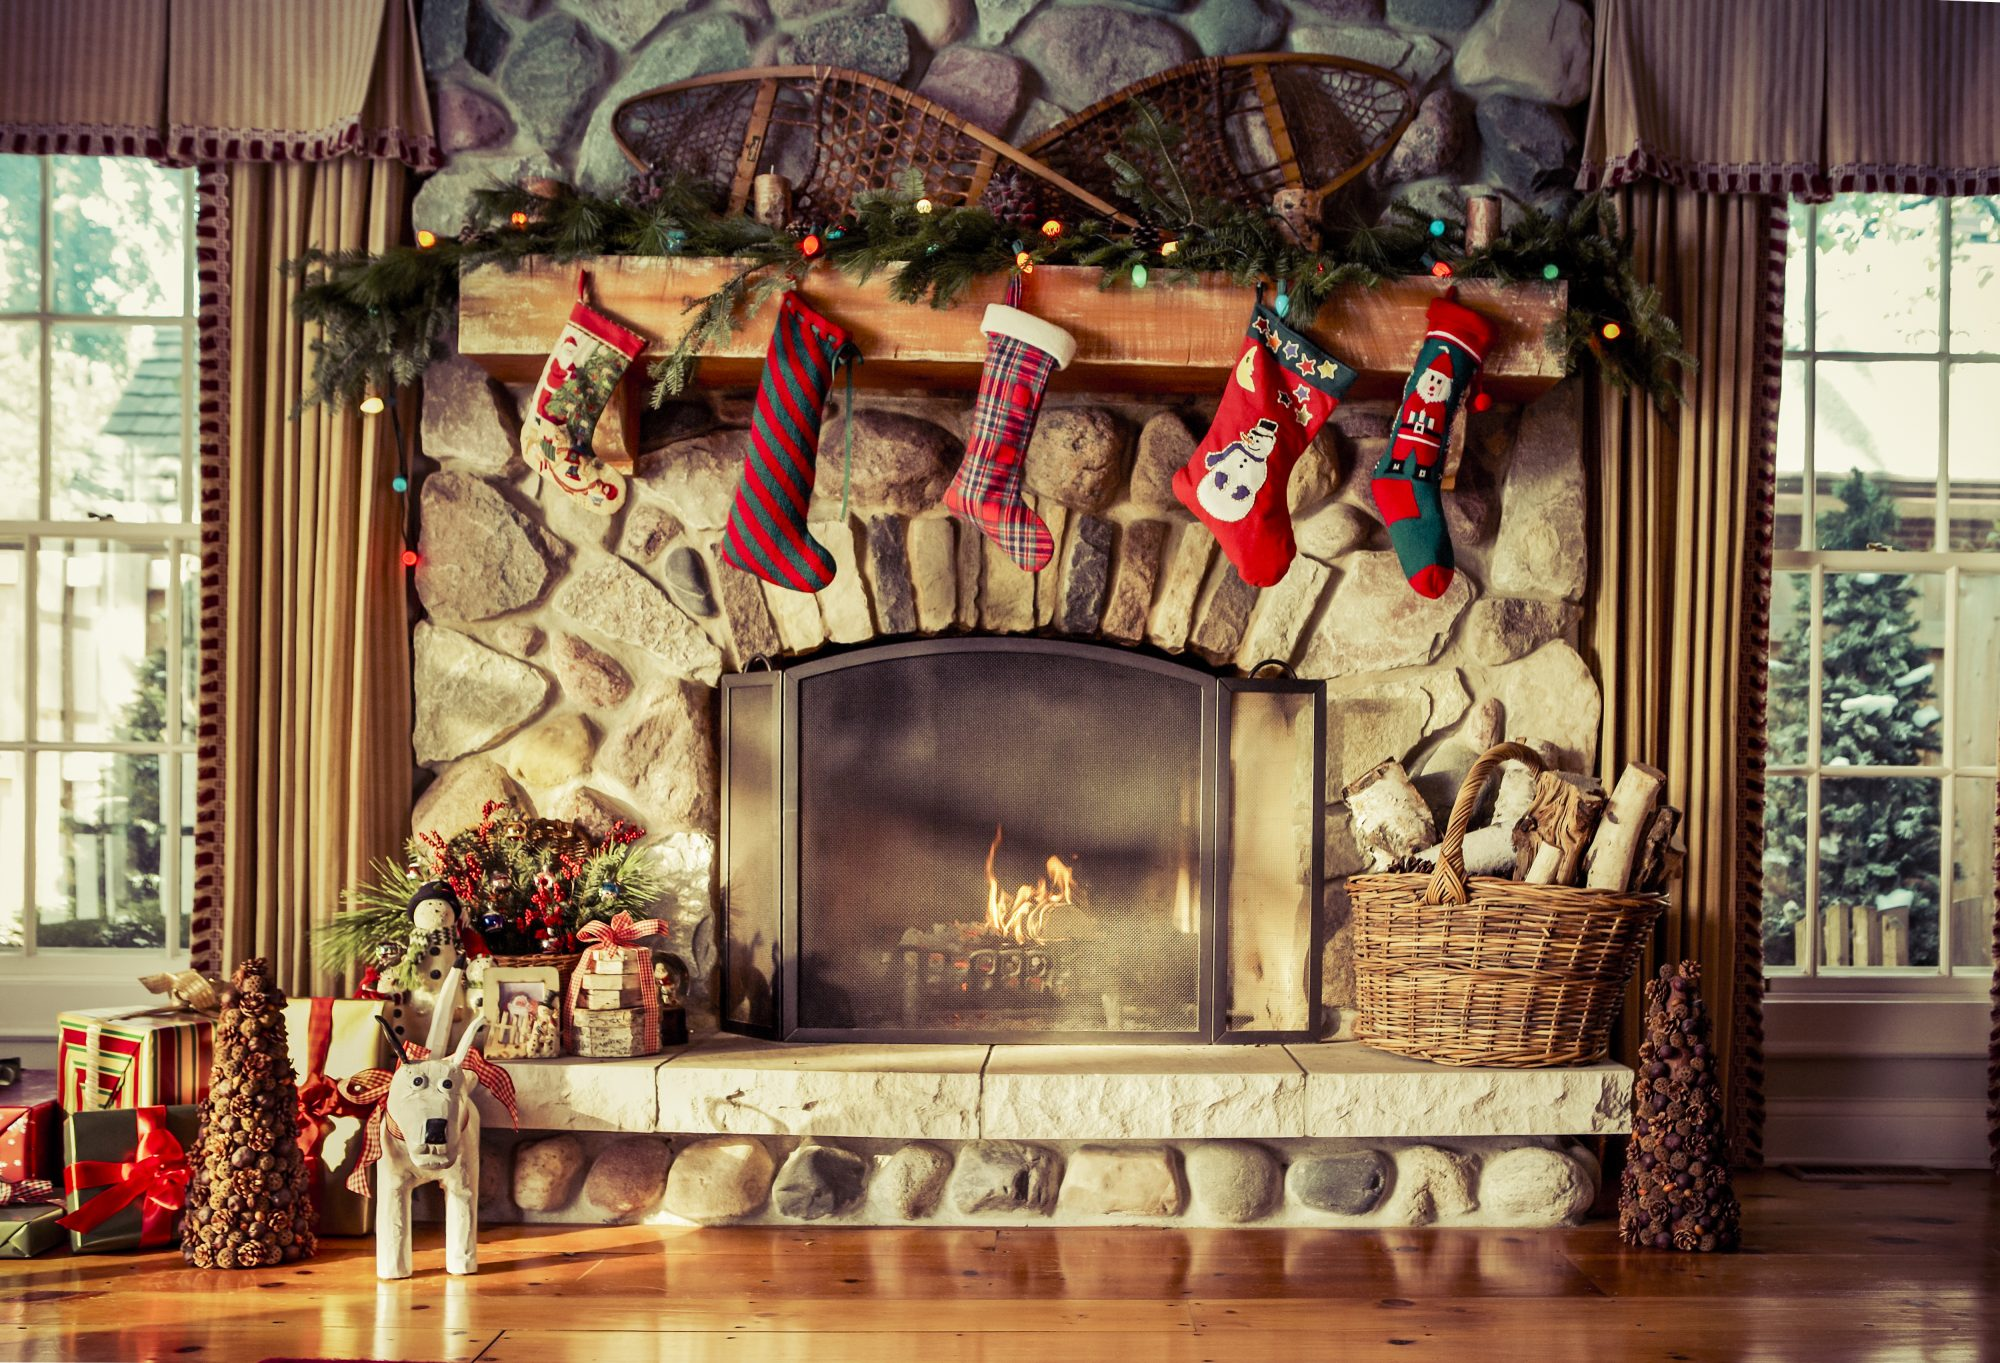 Christmas Stockings Hanging on Stone Fireplace